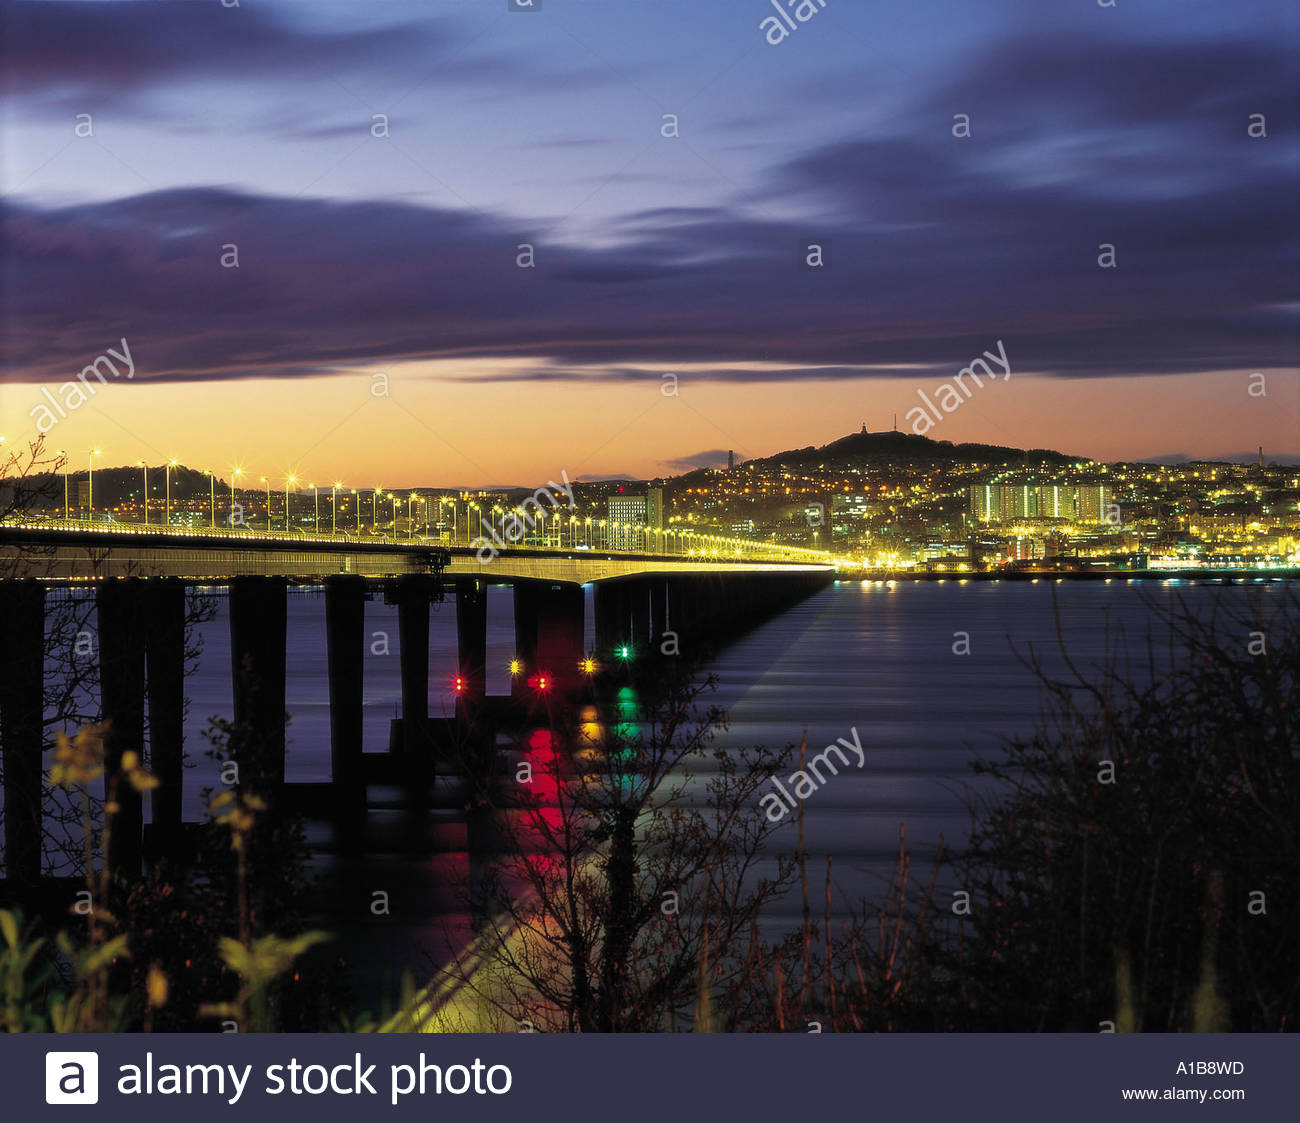 LOOKING ACROSS THE FIRTH OF TAY TO THE CITY OF DUNDEE AT SUNSET - Stock Image